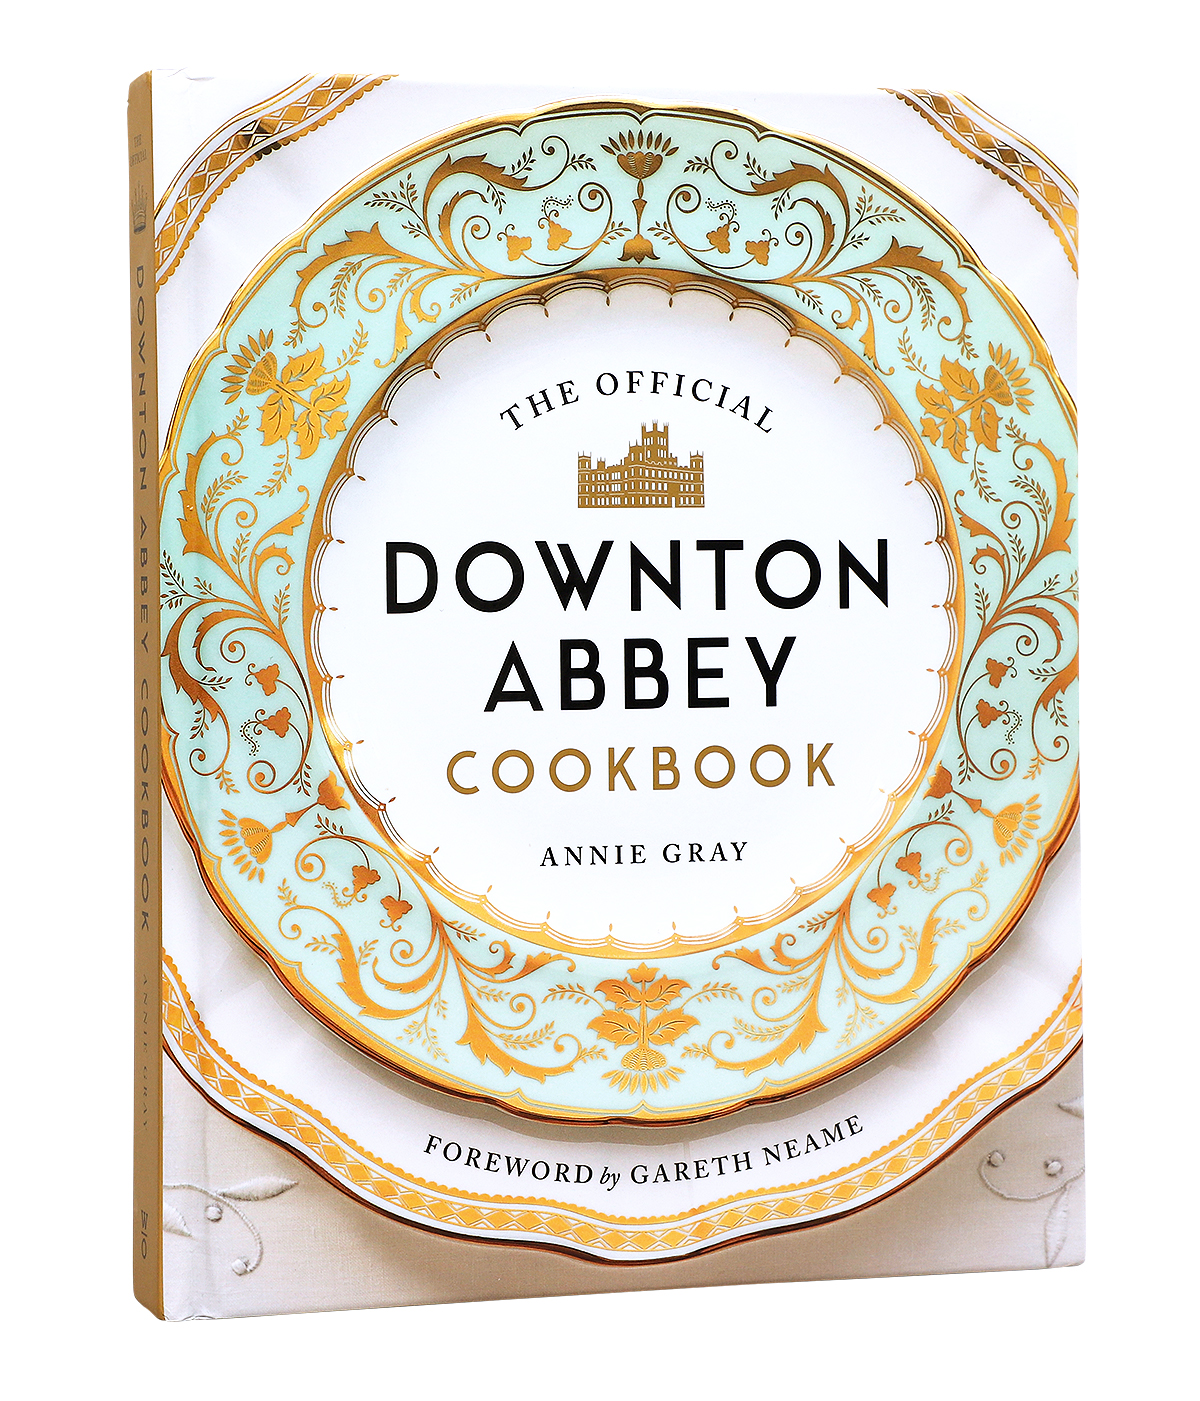 The Offical Dowton Abbey Cookbook by Annie Gray